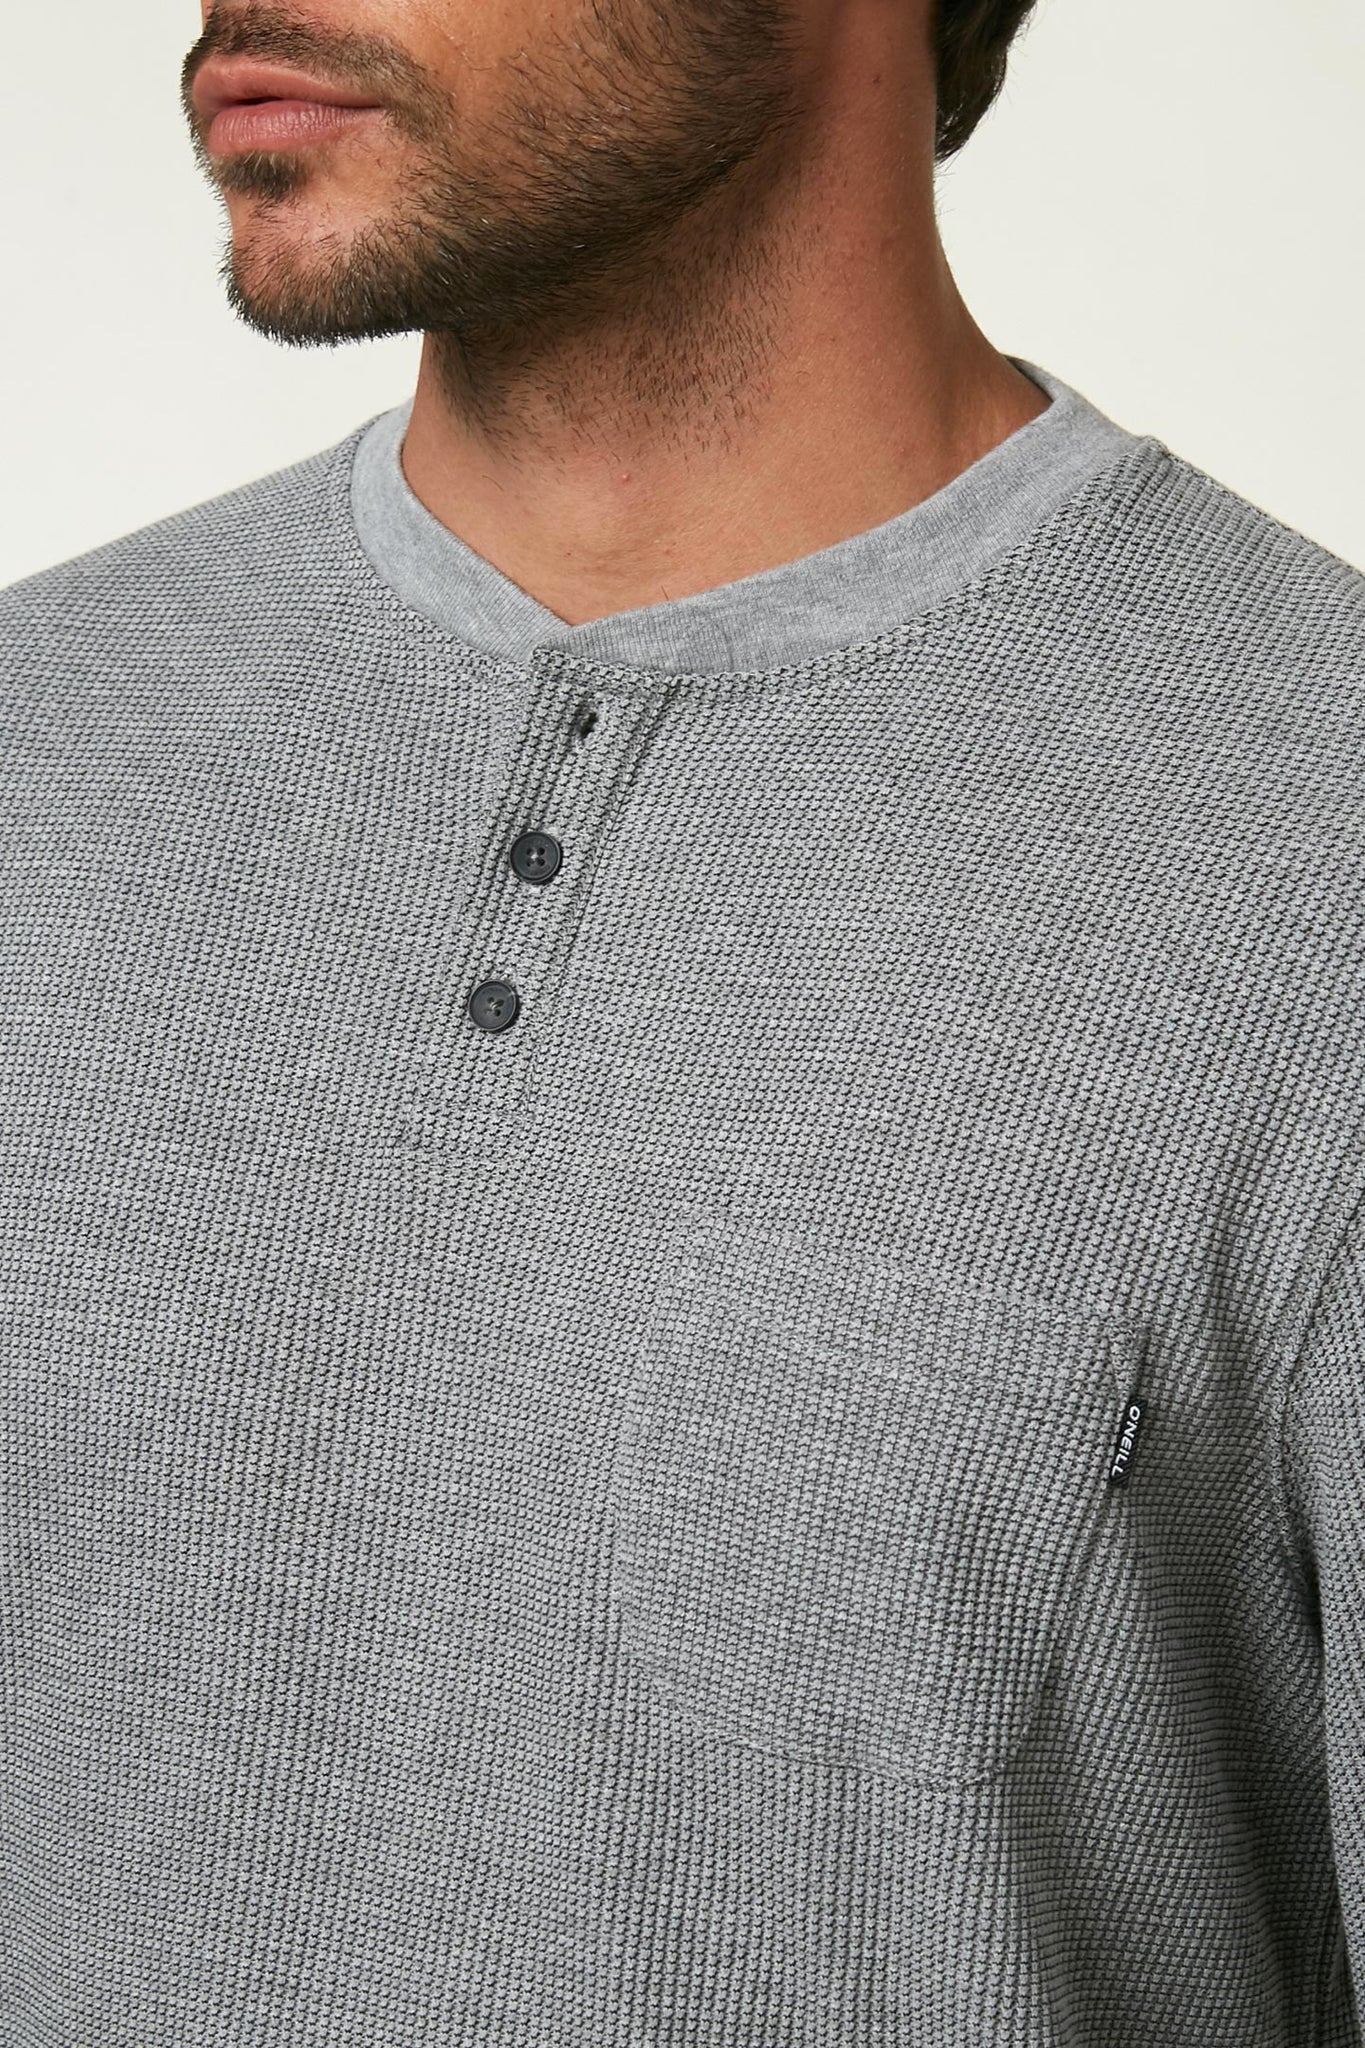 Olympia Long Sleeve Henley Shirt - Light Grey | O'Neill